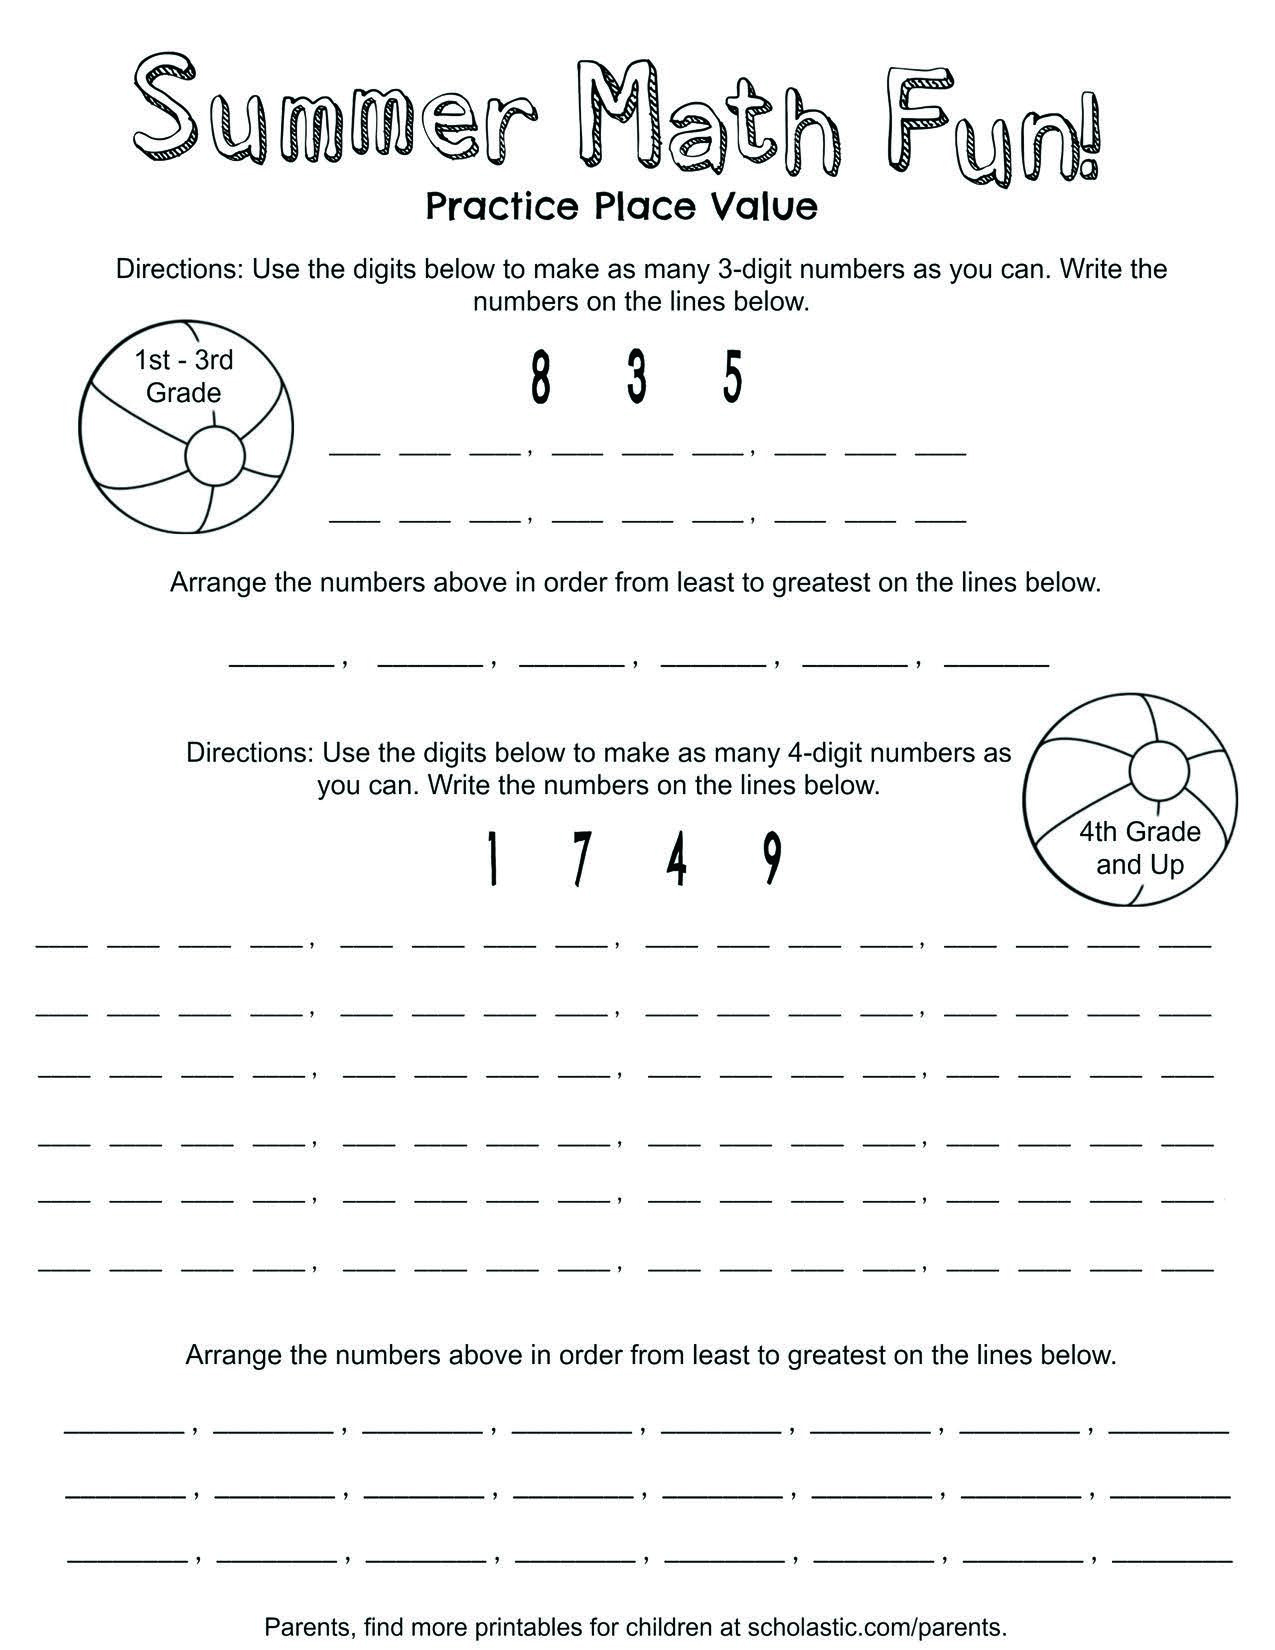 Place Value Summer Fun Printable